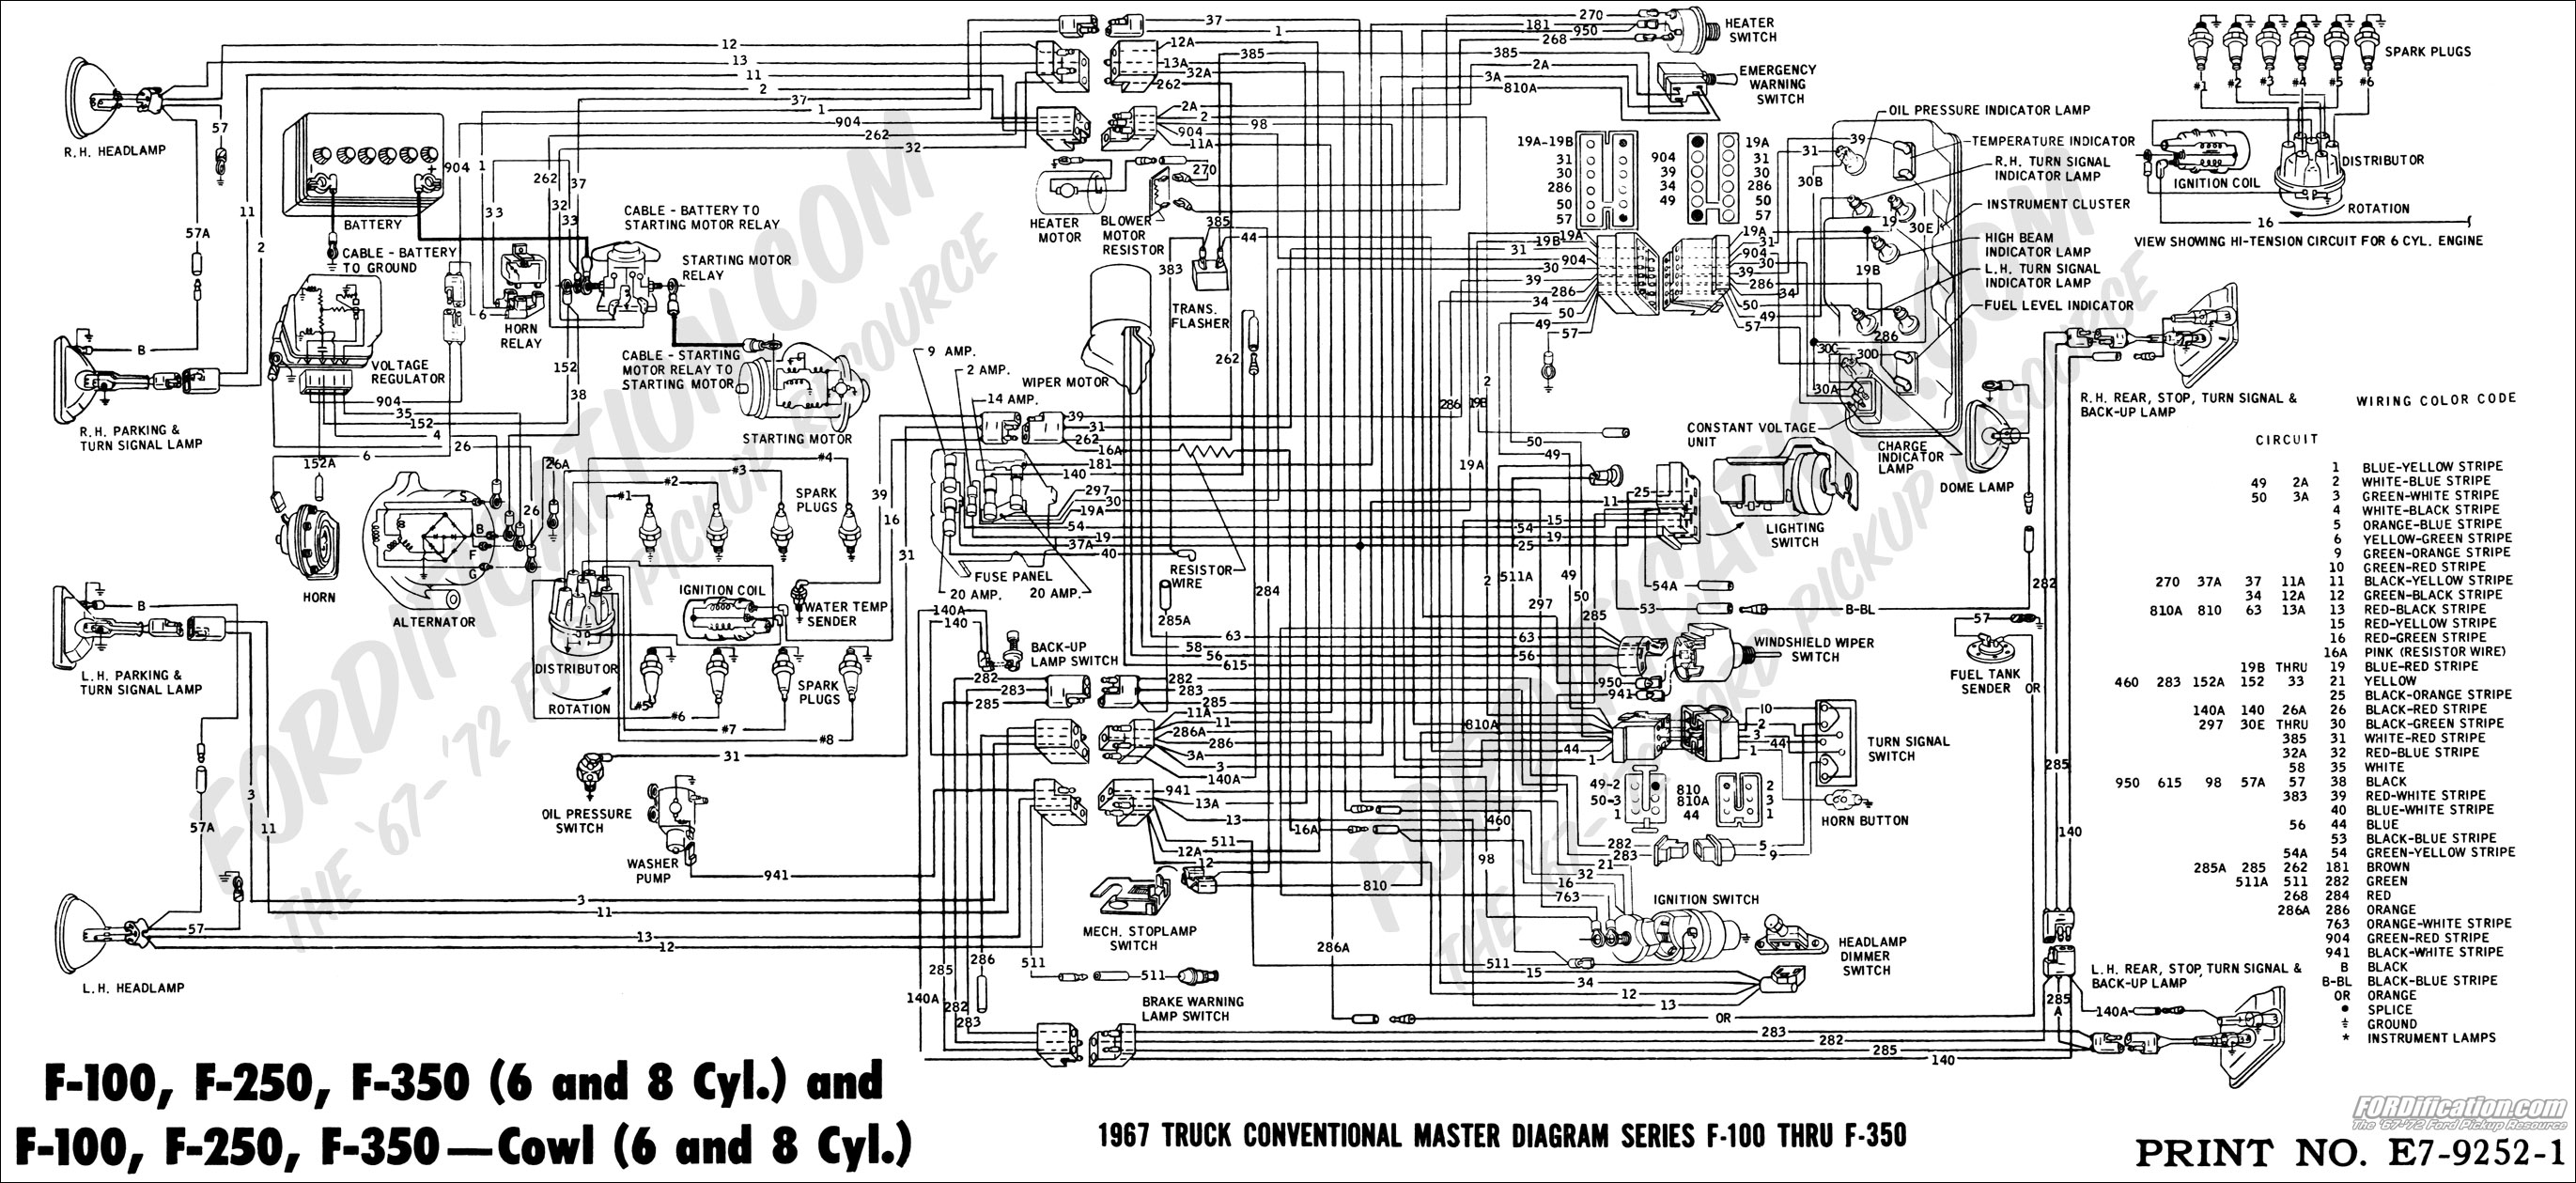 1992 Ford F150 Electrical Schematic WIRING INFO